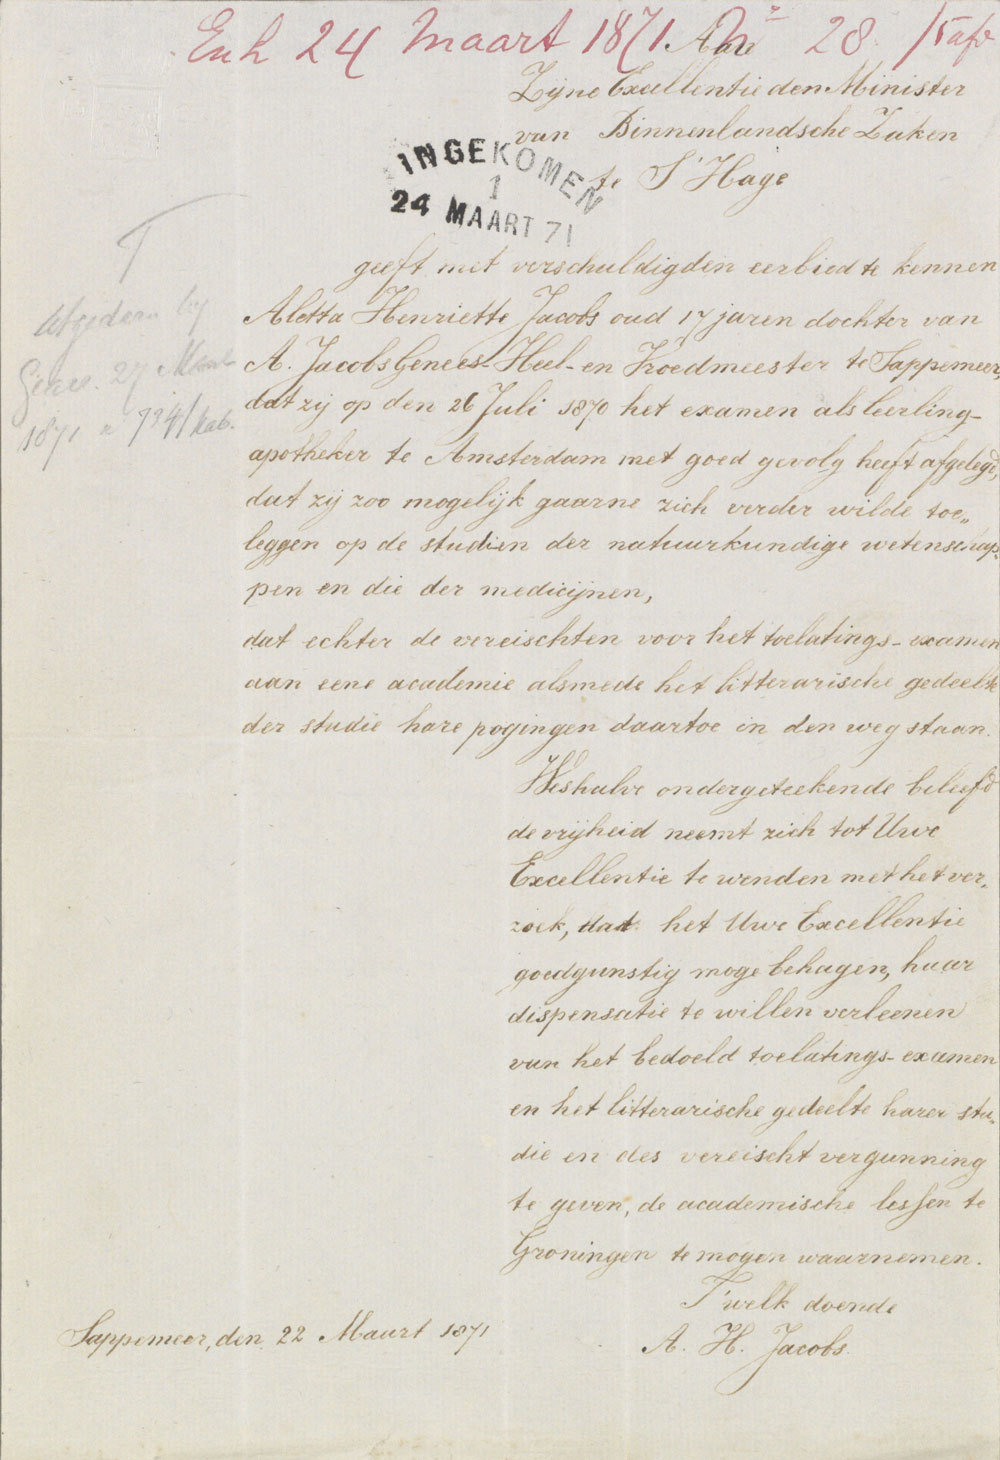 Petition from 1871 to be admitted to Groningen University, Collection Ministry of Internal Affairs, National Archives, Netherlands, Public Domain Mark